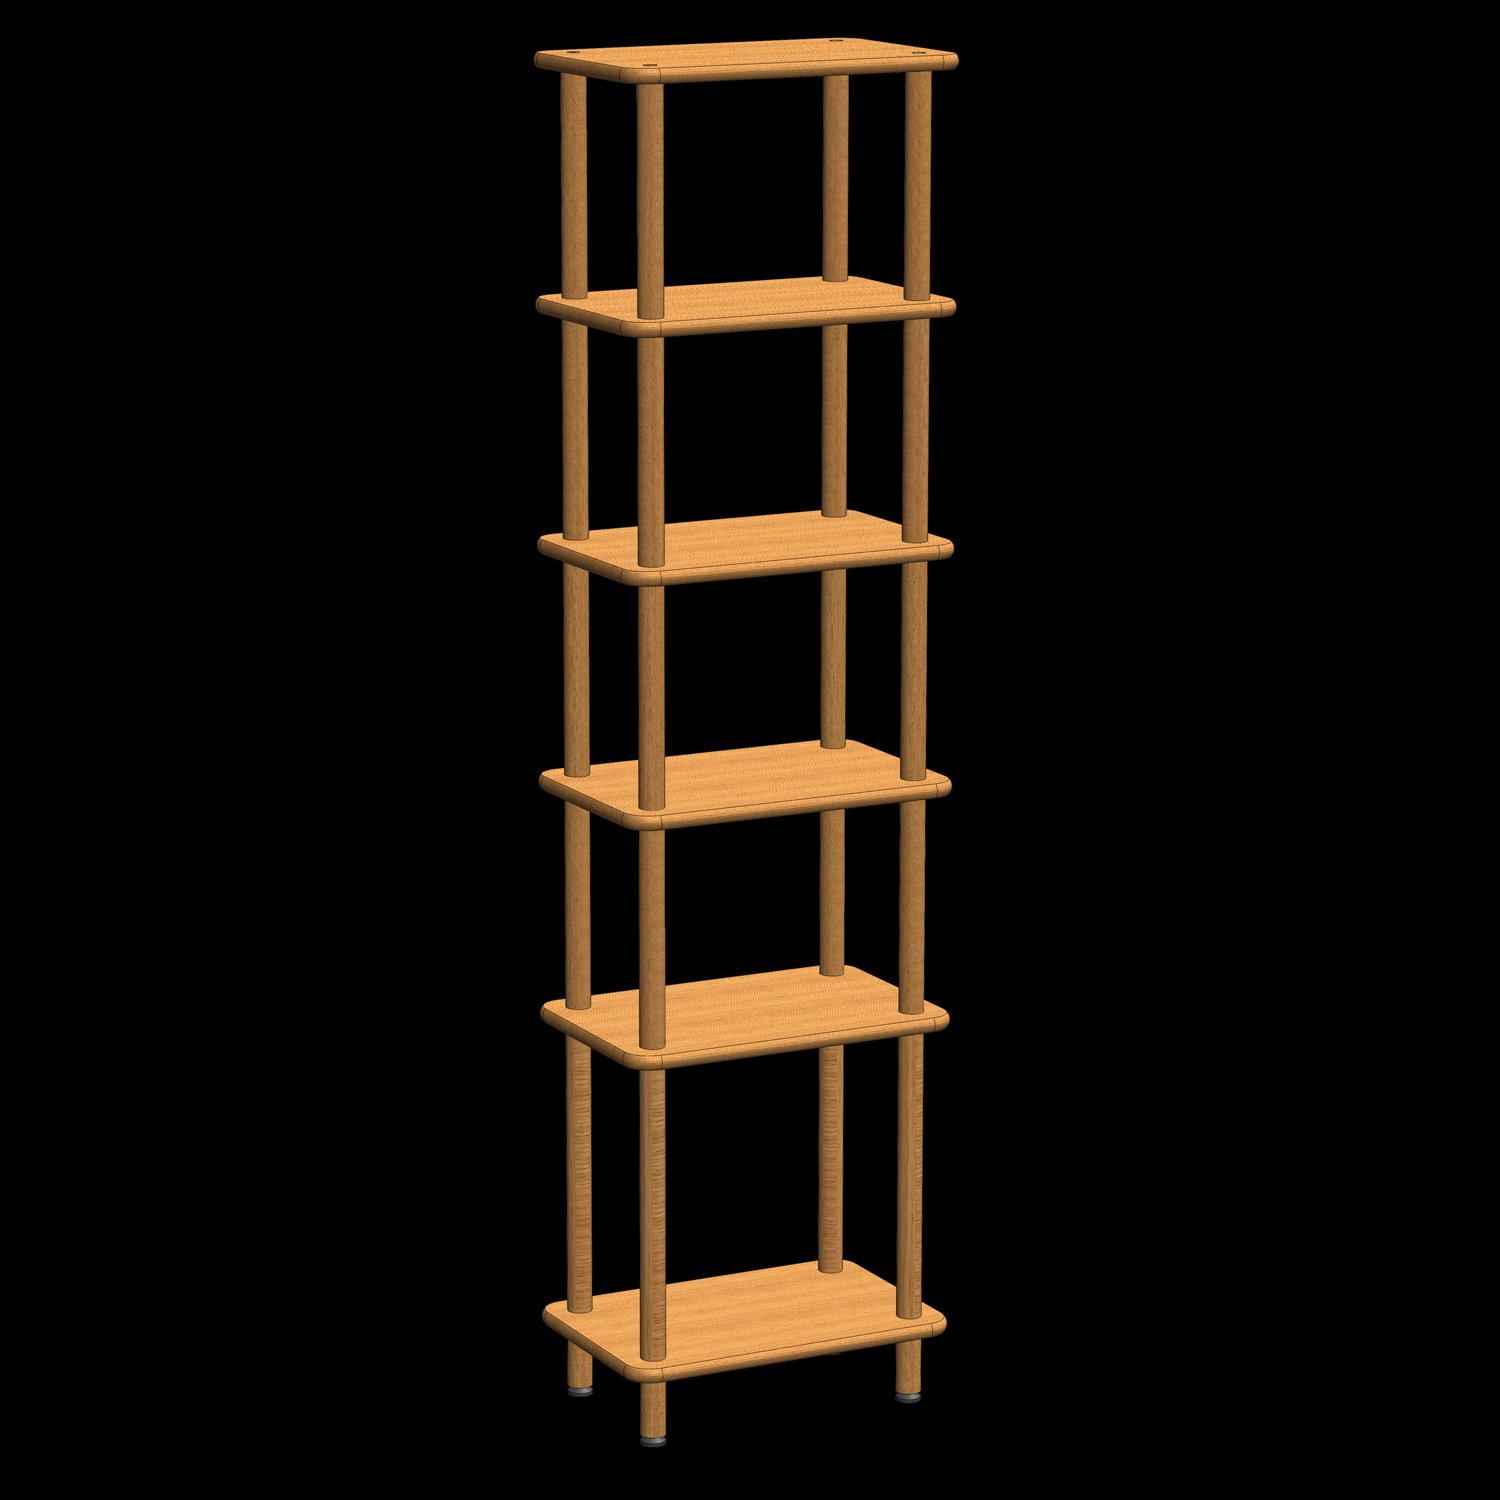 etagere 50 cm de largeur id es de d coration int rieure french decor. Black Bedroom Furniture Sets. Home Design Ideas